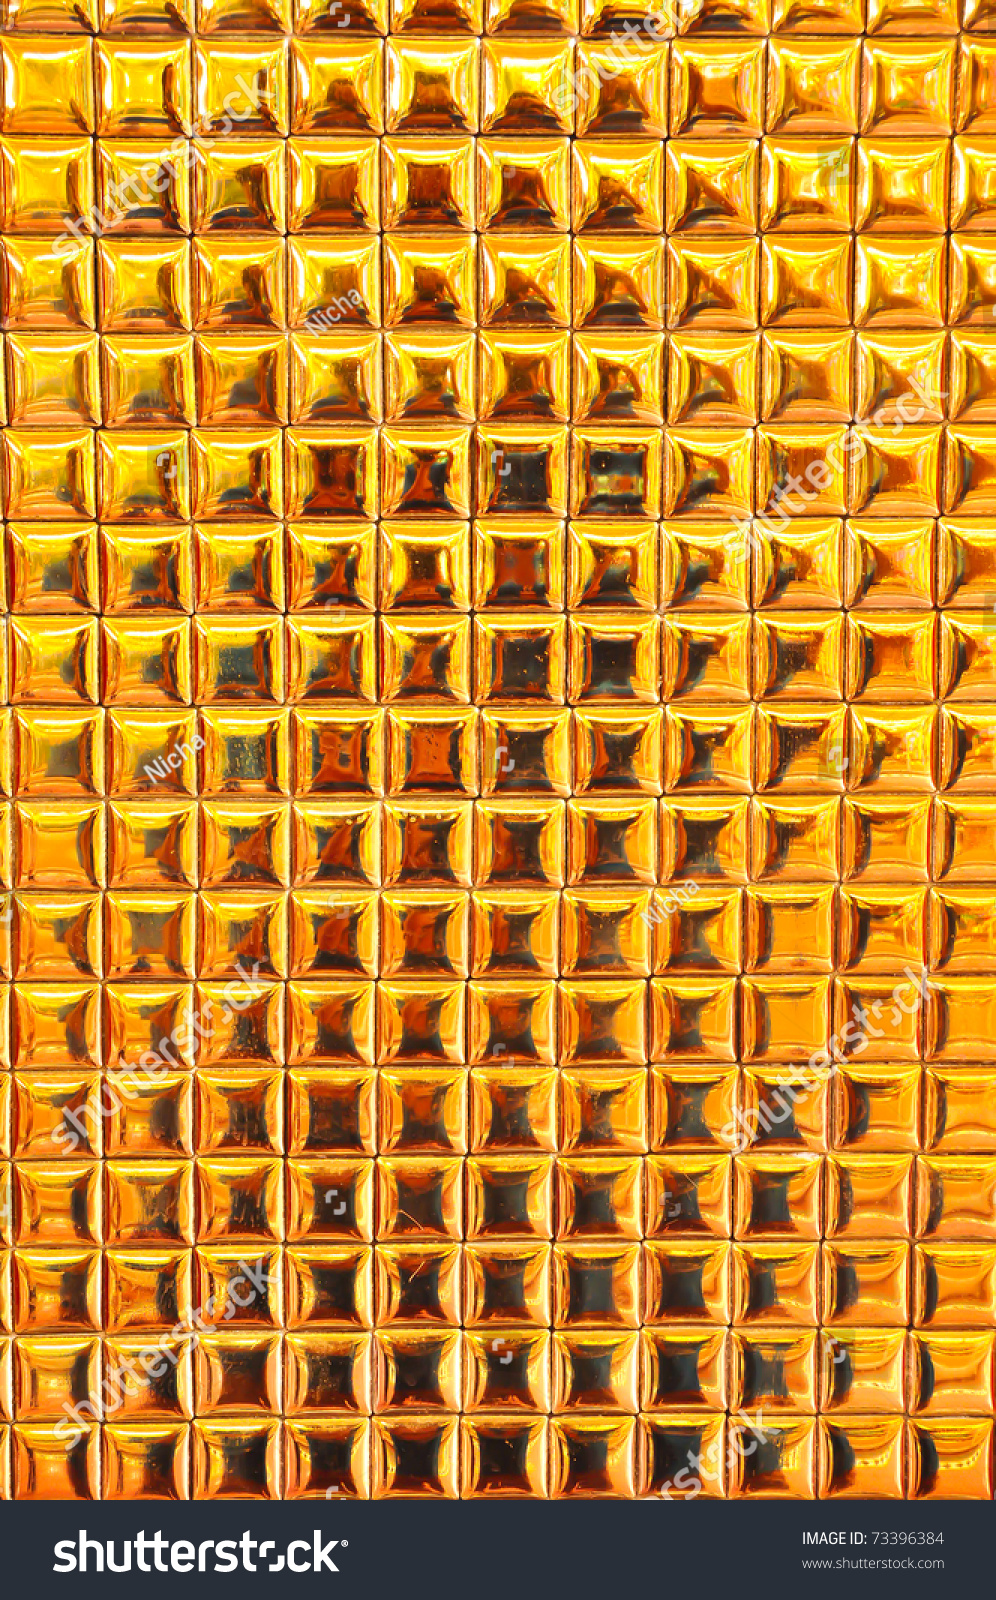 Golden ceramic tile texture stock photo 73396384 shutterstock dailygadgetfo Choice Image